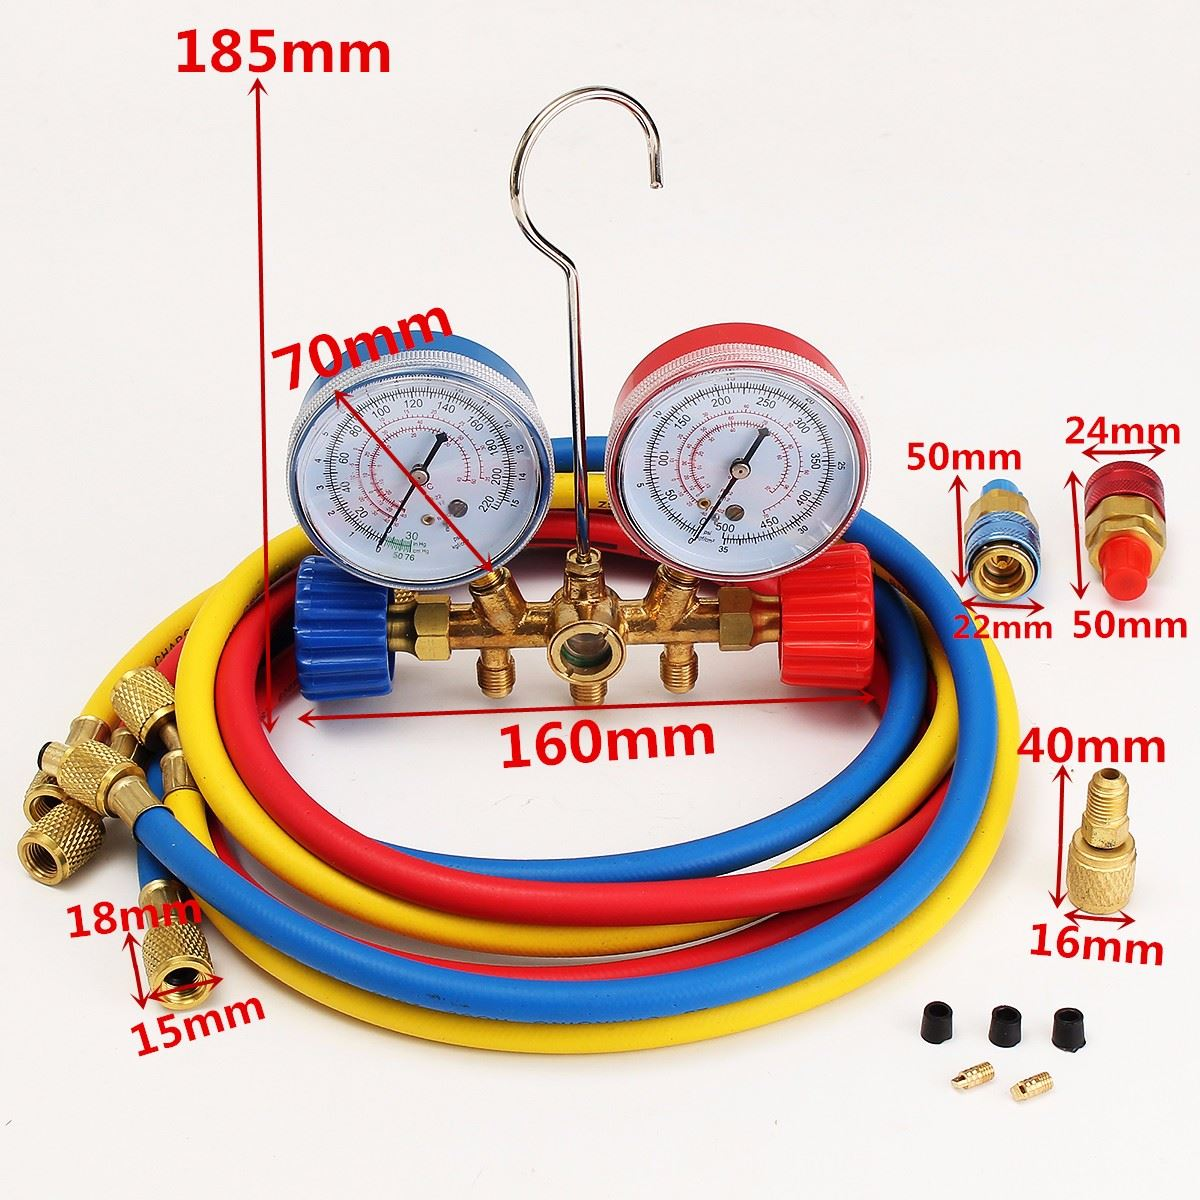 HVAC A/C Refrigeration Kit Manifold Gauge Set R22 R12 R134A Auto Refrigerant H/L Durable Quality fixmee 2pcs car auto freon r134a h l quick coupler adapters air conditioning refrigerant adjustable a c manifold gauge set